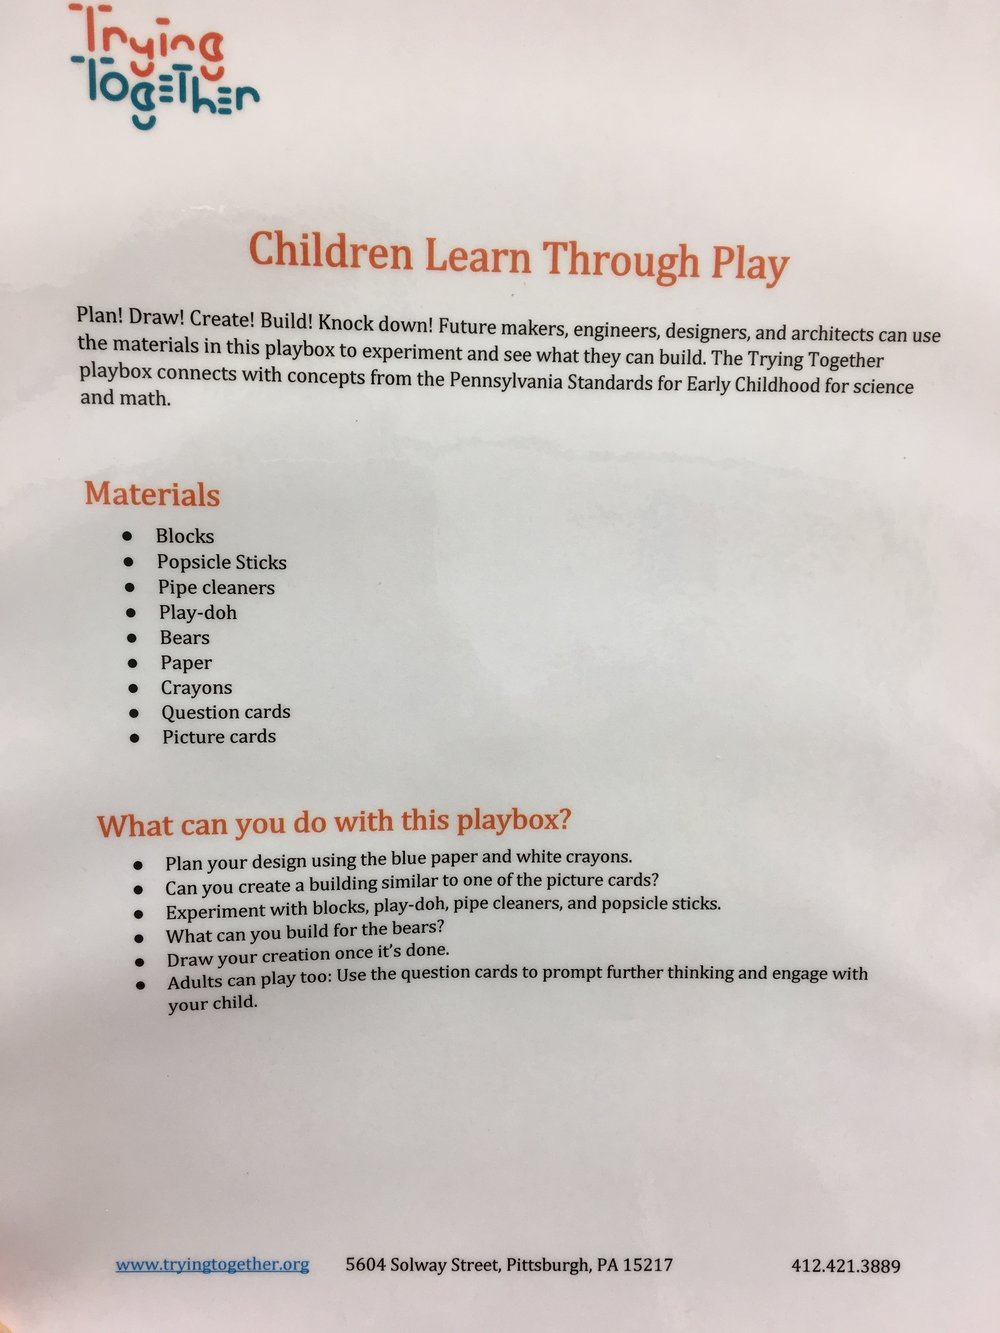 Trying Together Play Box Description